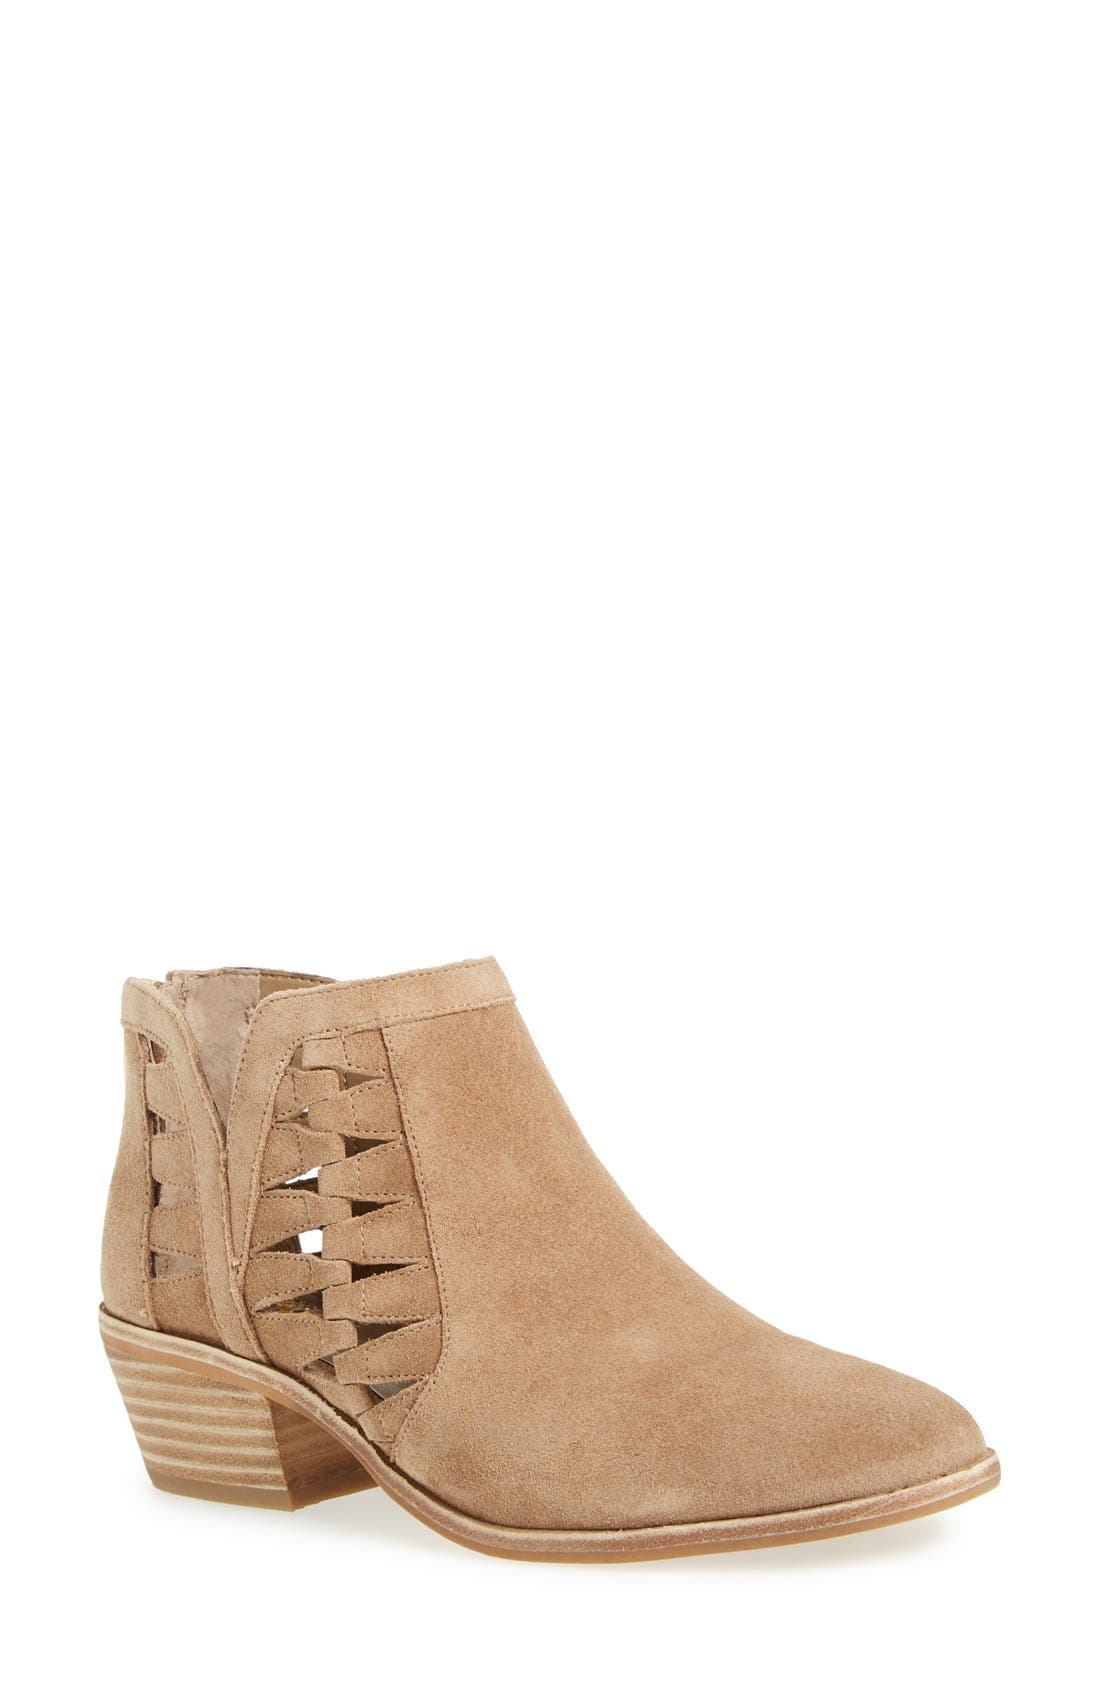 'Peera' Cutout Bootie,                         Main,                         color, Khaki Suede